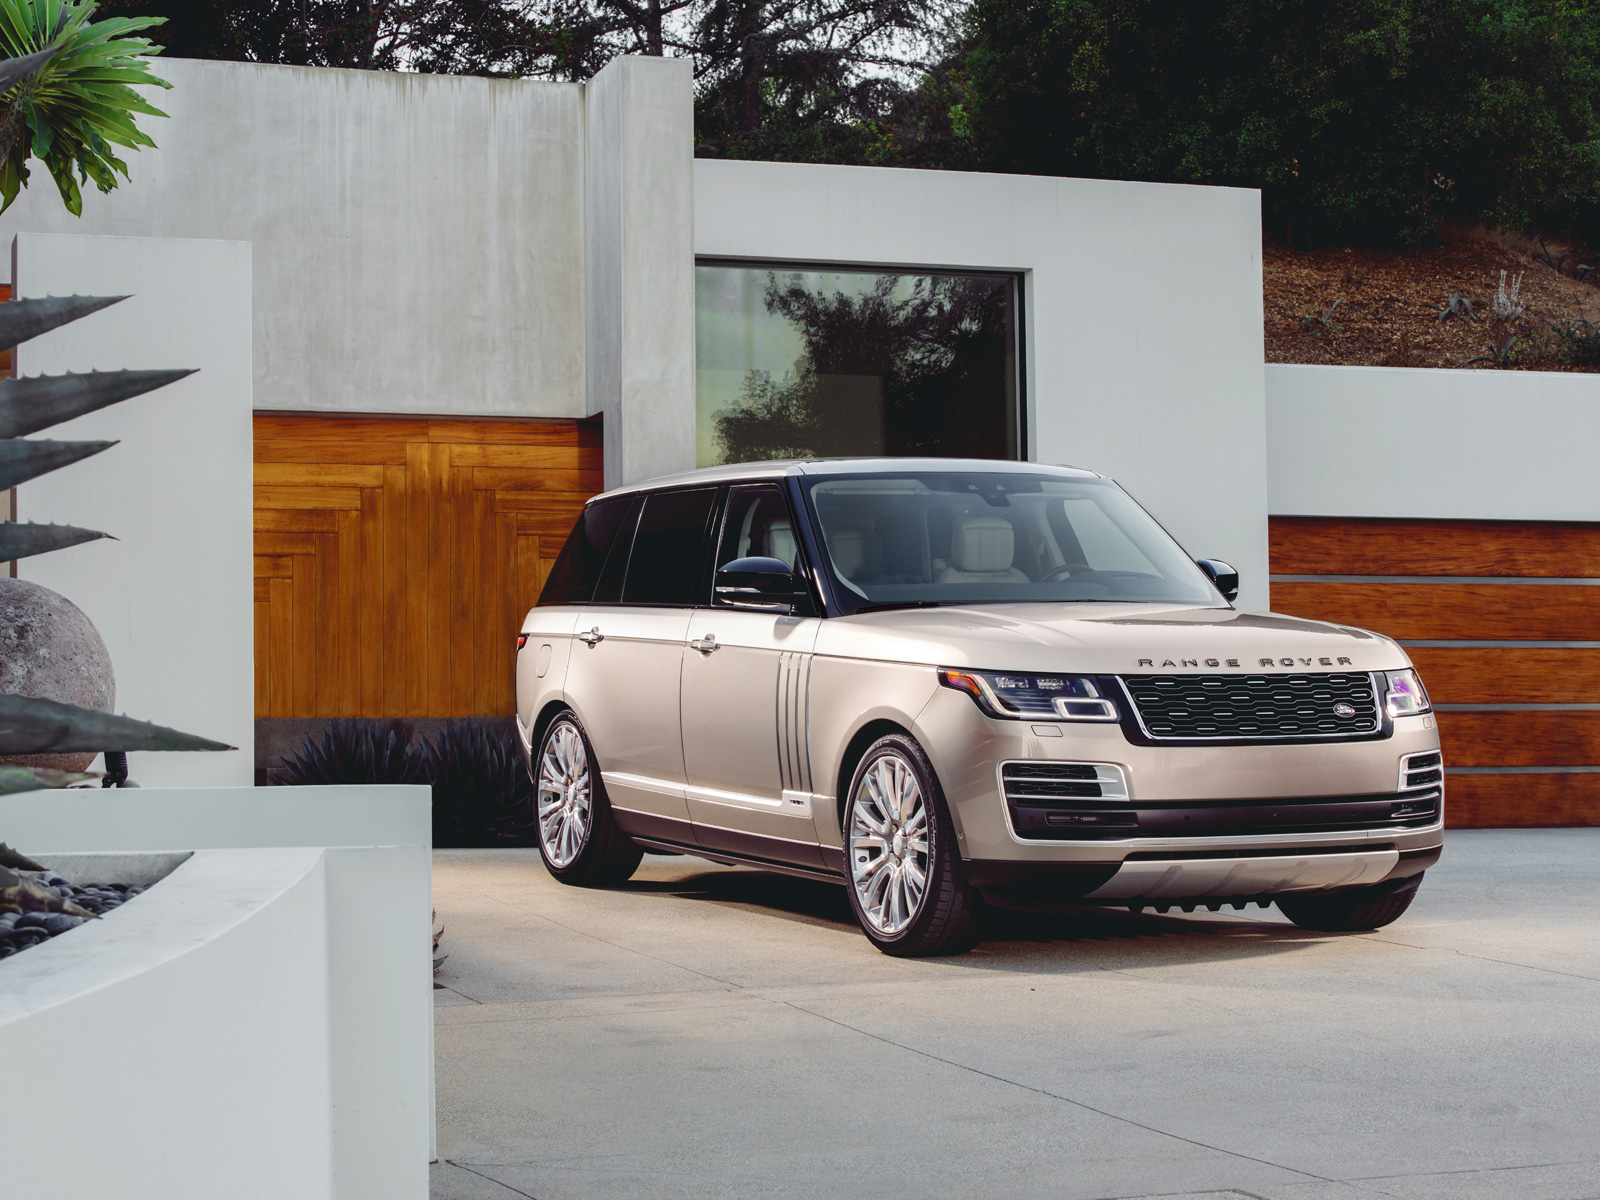 2017 Land Rover Range Rover 5.0 L V8 Supercharged Autobiography >> 2018 Range Rover SVAutobiography Delivers New Levels of ...